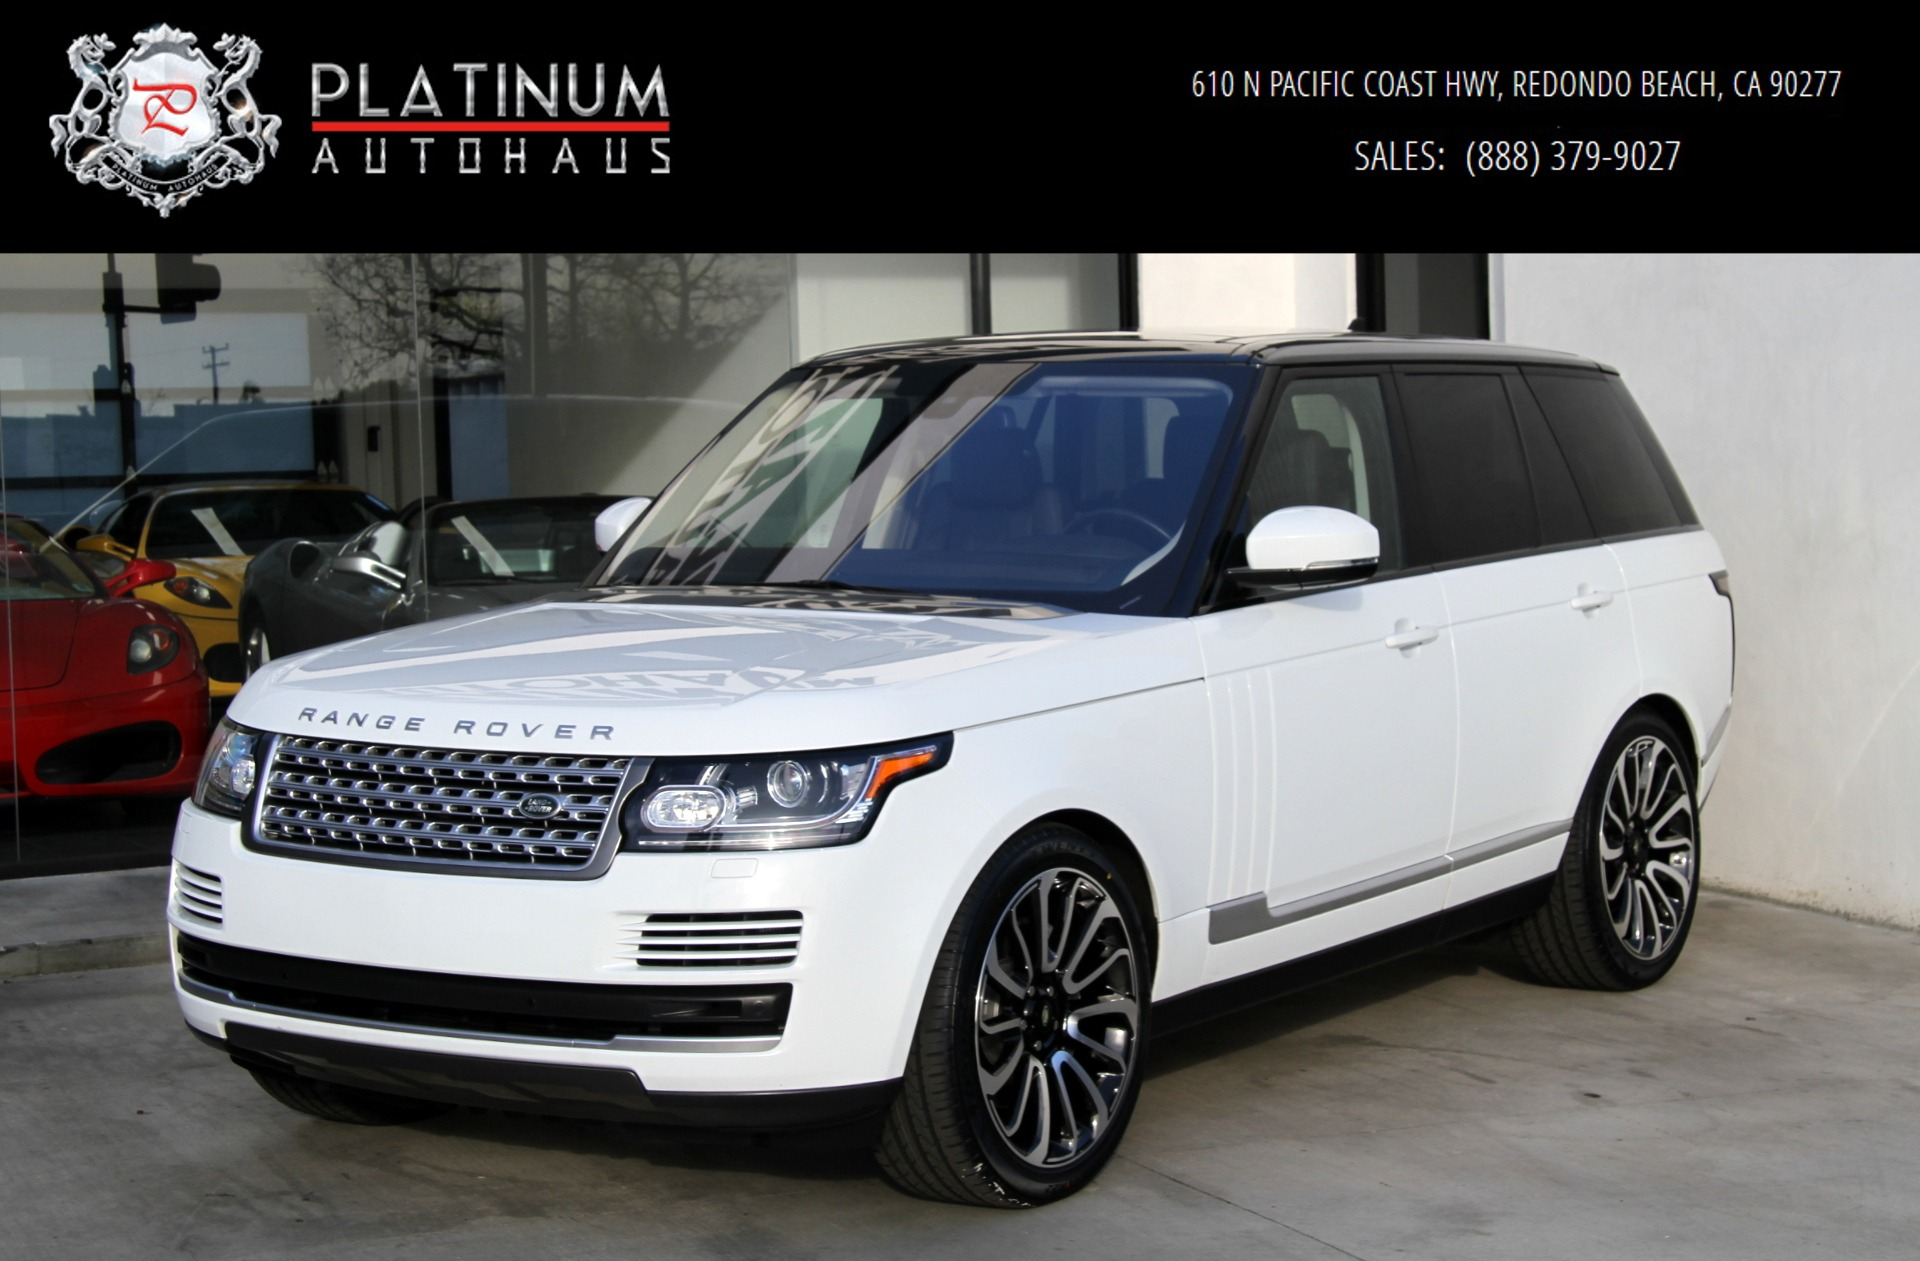 2016 land rover range rover hse stock 6092 for sale near redondo beach ca ca land rover dealer. Black Bedroom Furniture Sets. Home Design Ideas